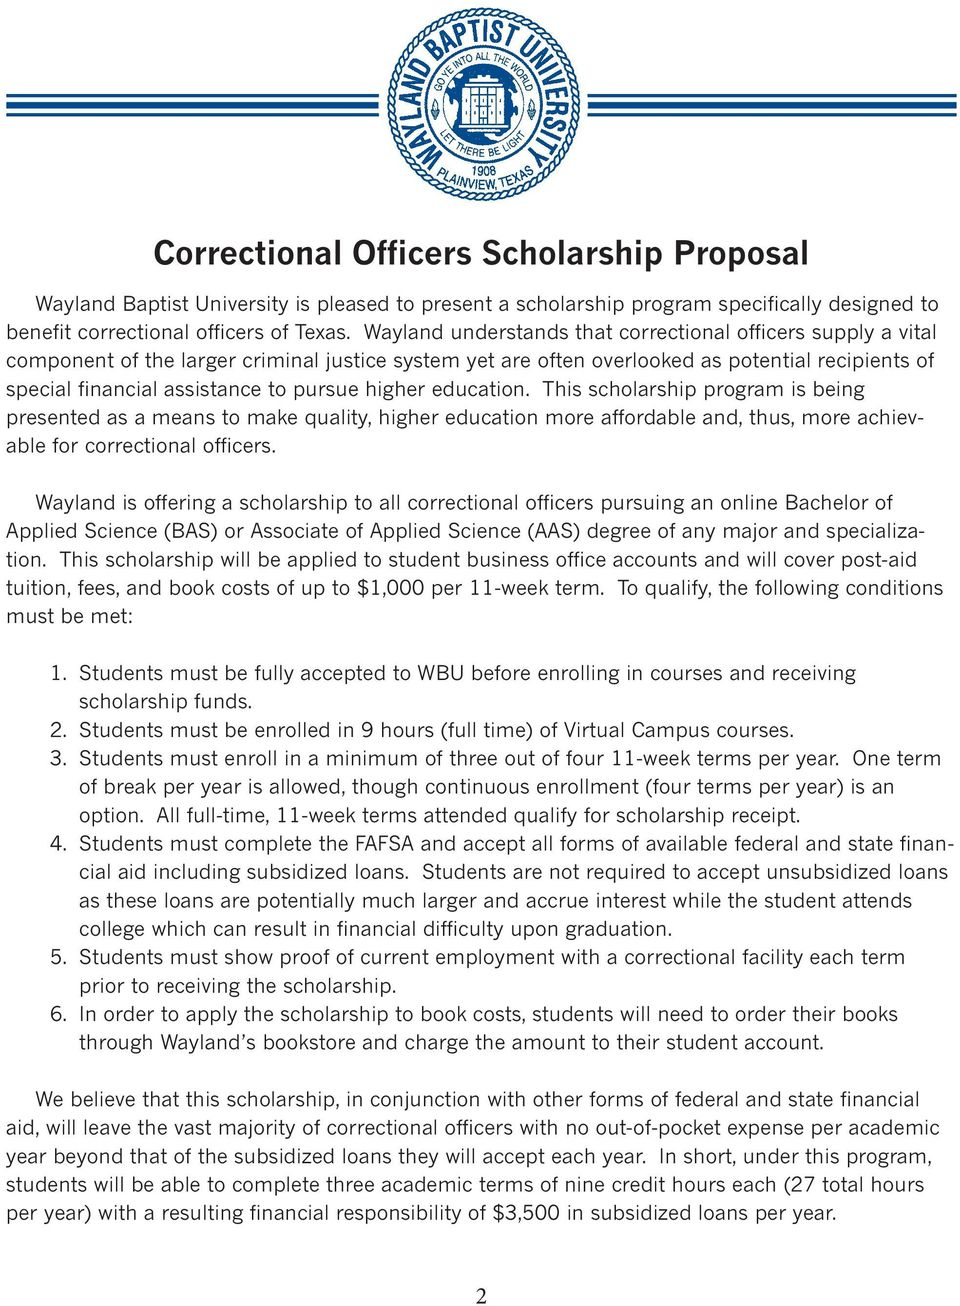 pursue higher education. This scholarship program is being presented as a means to make quality, higher education more affordable and, thus, more achievable for correctional officers.